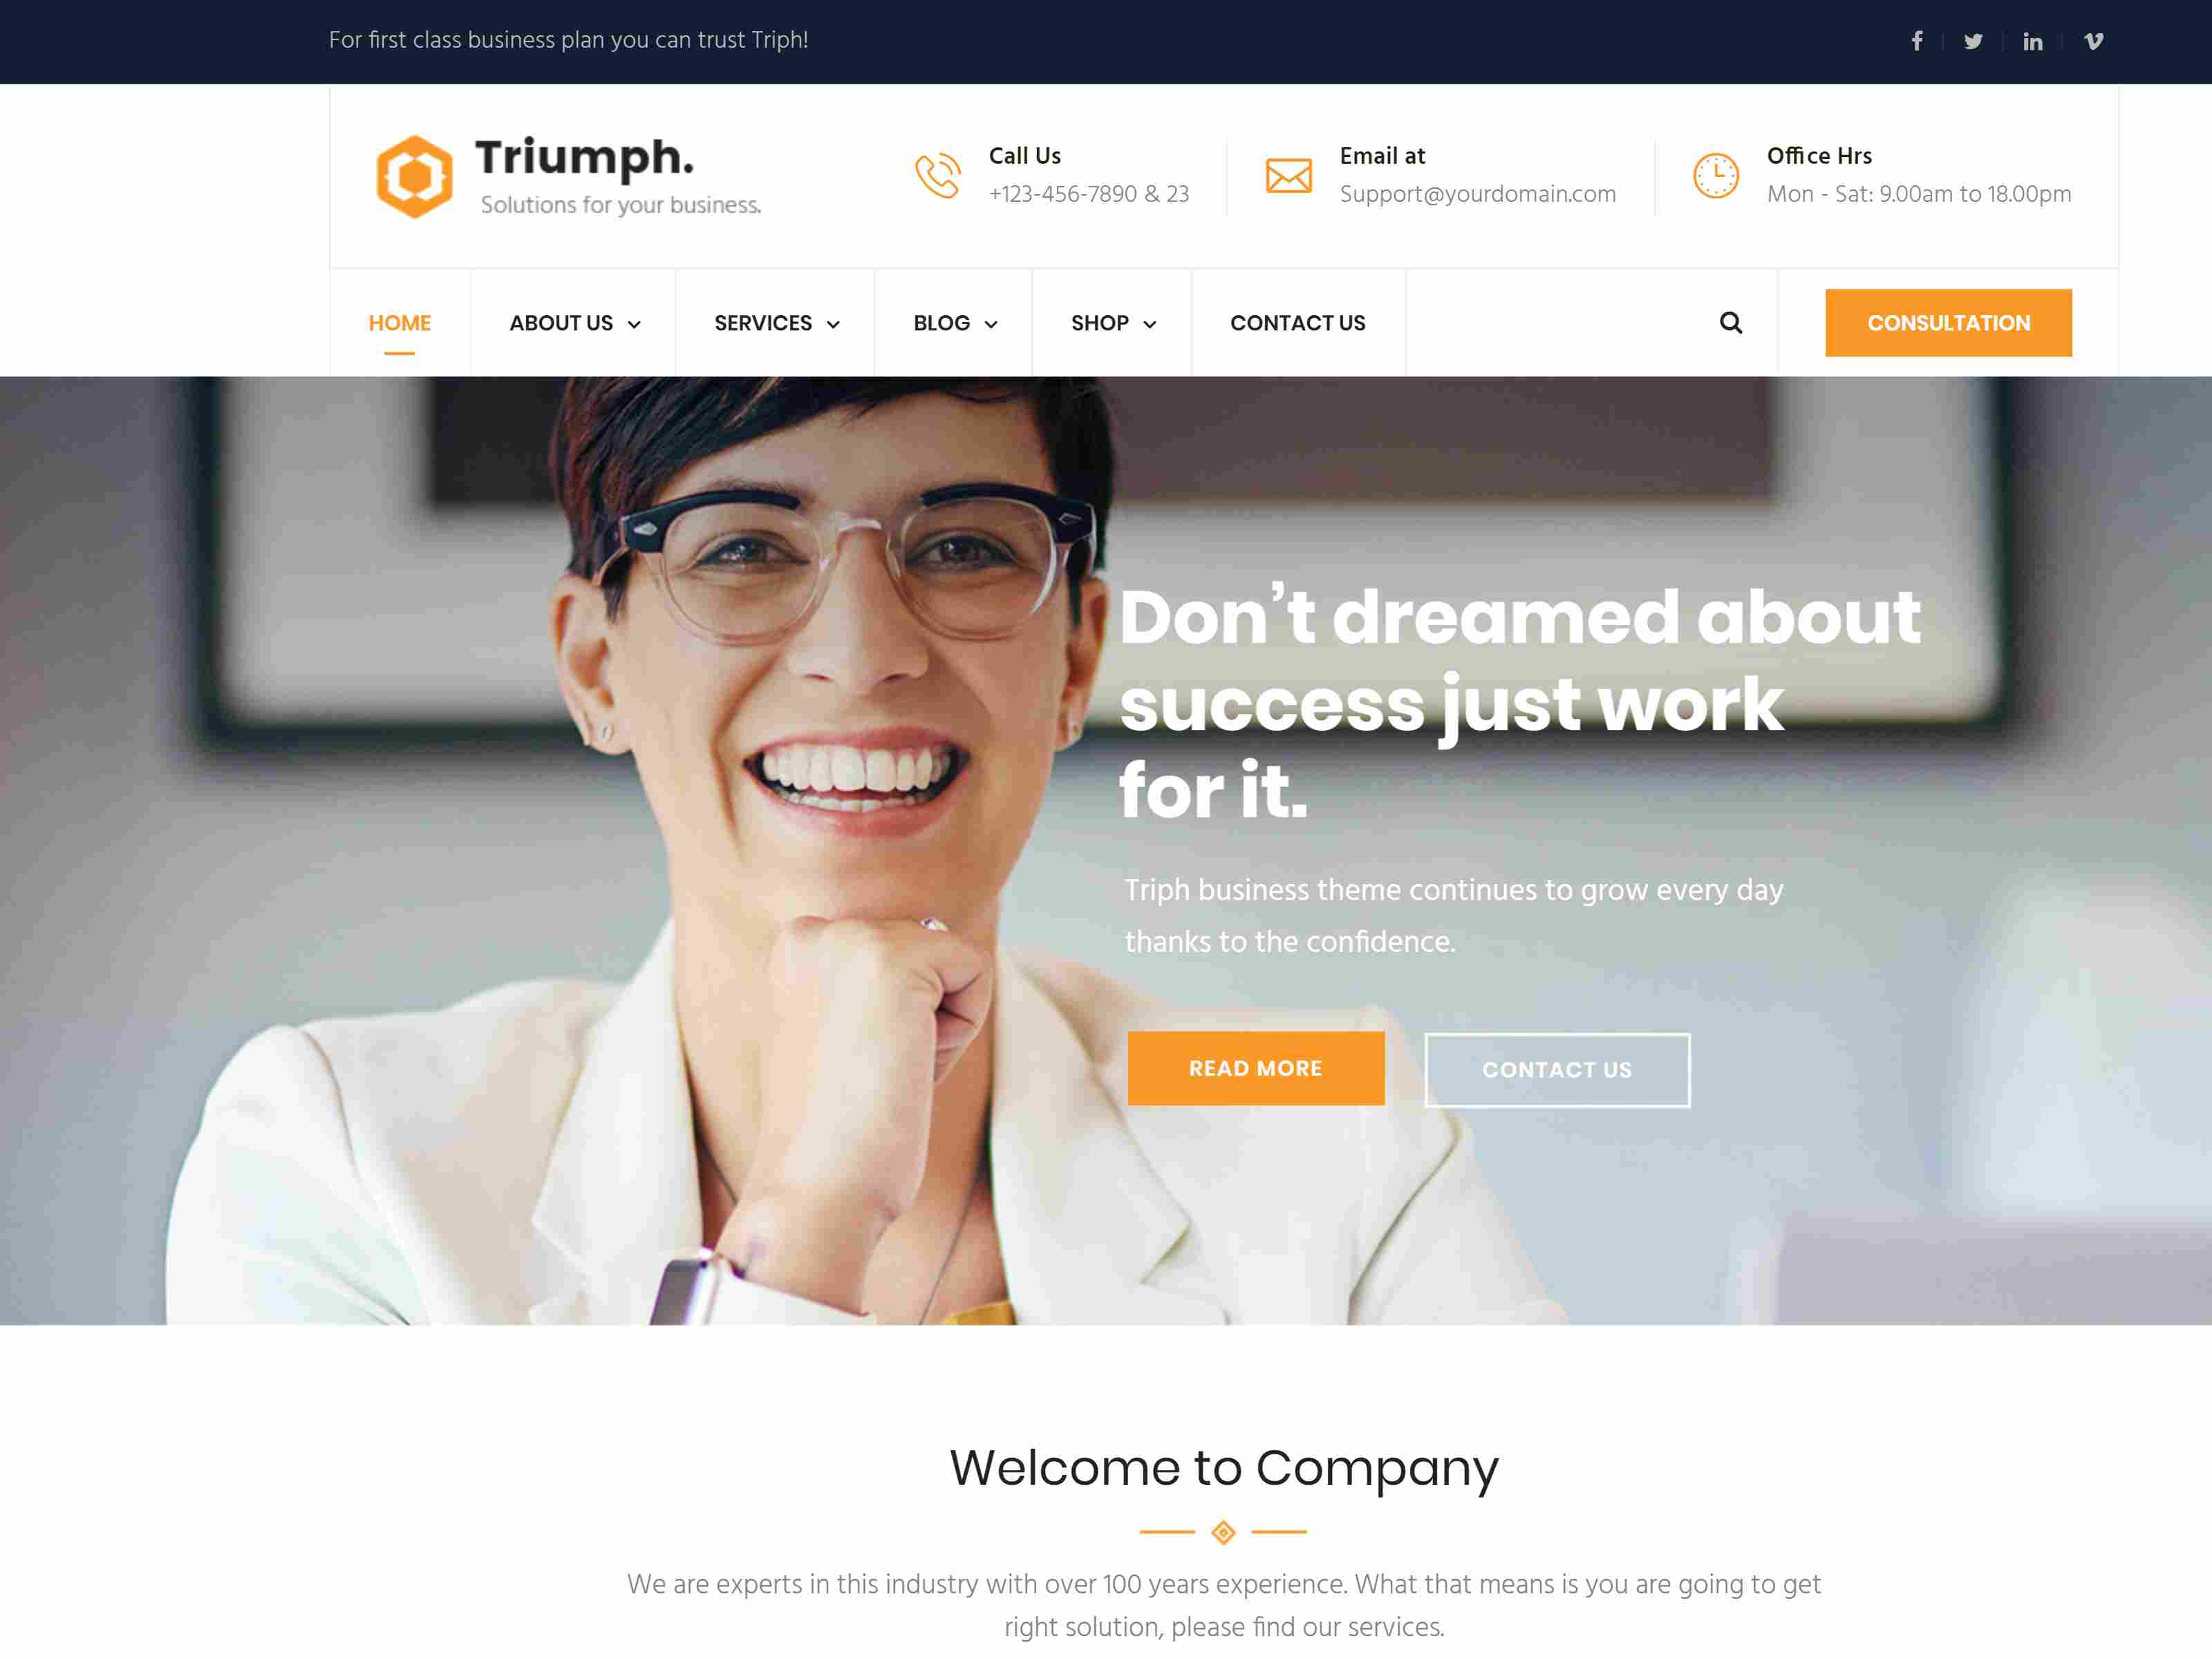 Triumph - Business Consulting and Professional Services Drupal 8.8 Theme